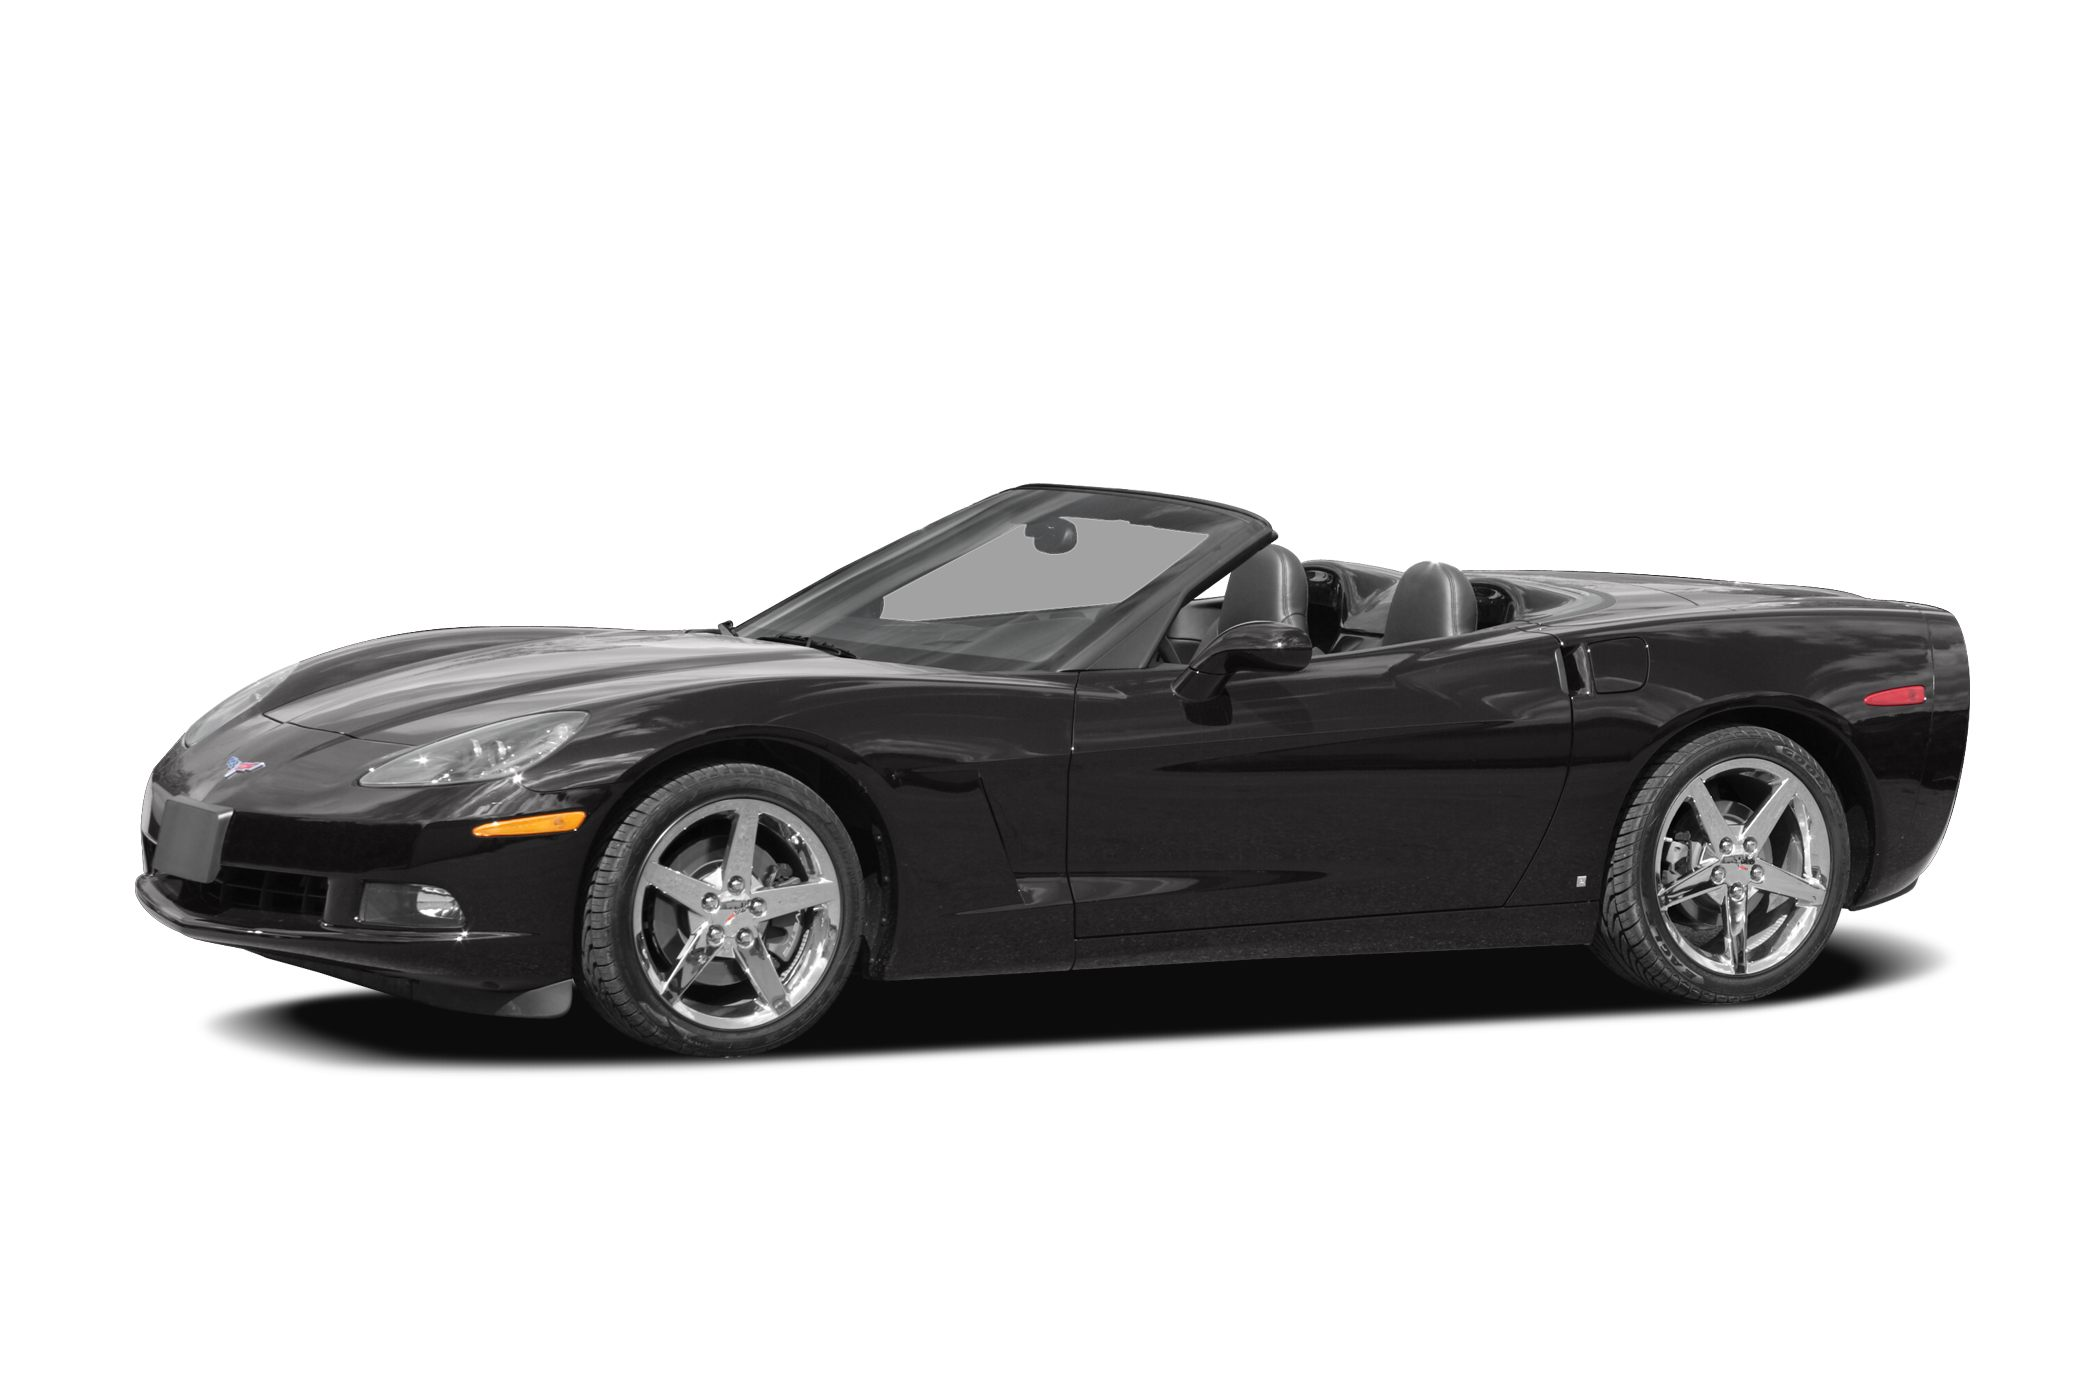 2007 Chevrolet Corvette  Blow out pricing Priced below NADA Retail Includes a CARFAX buyback g